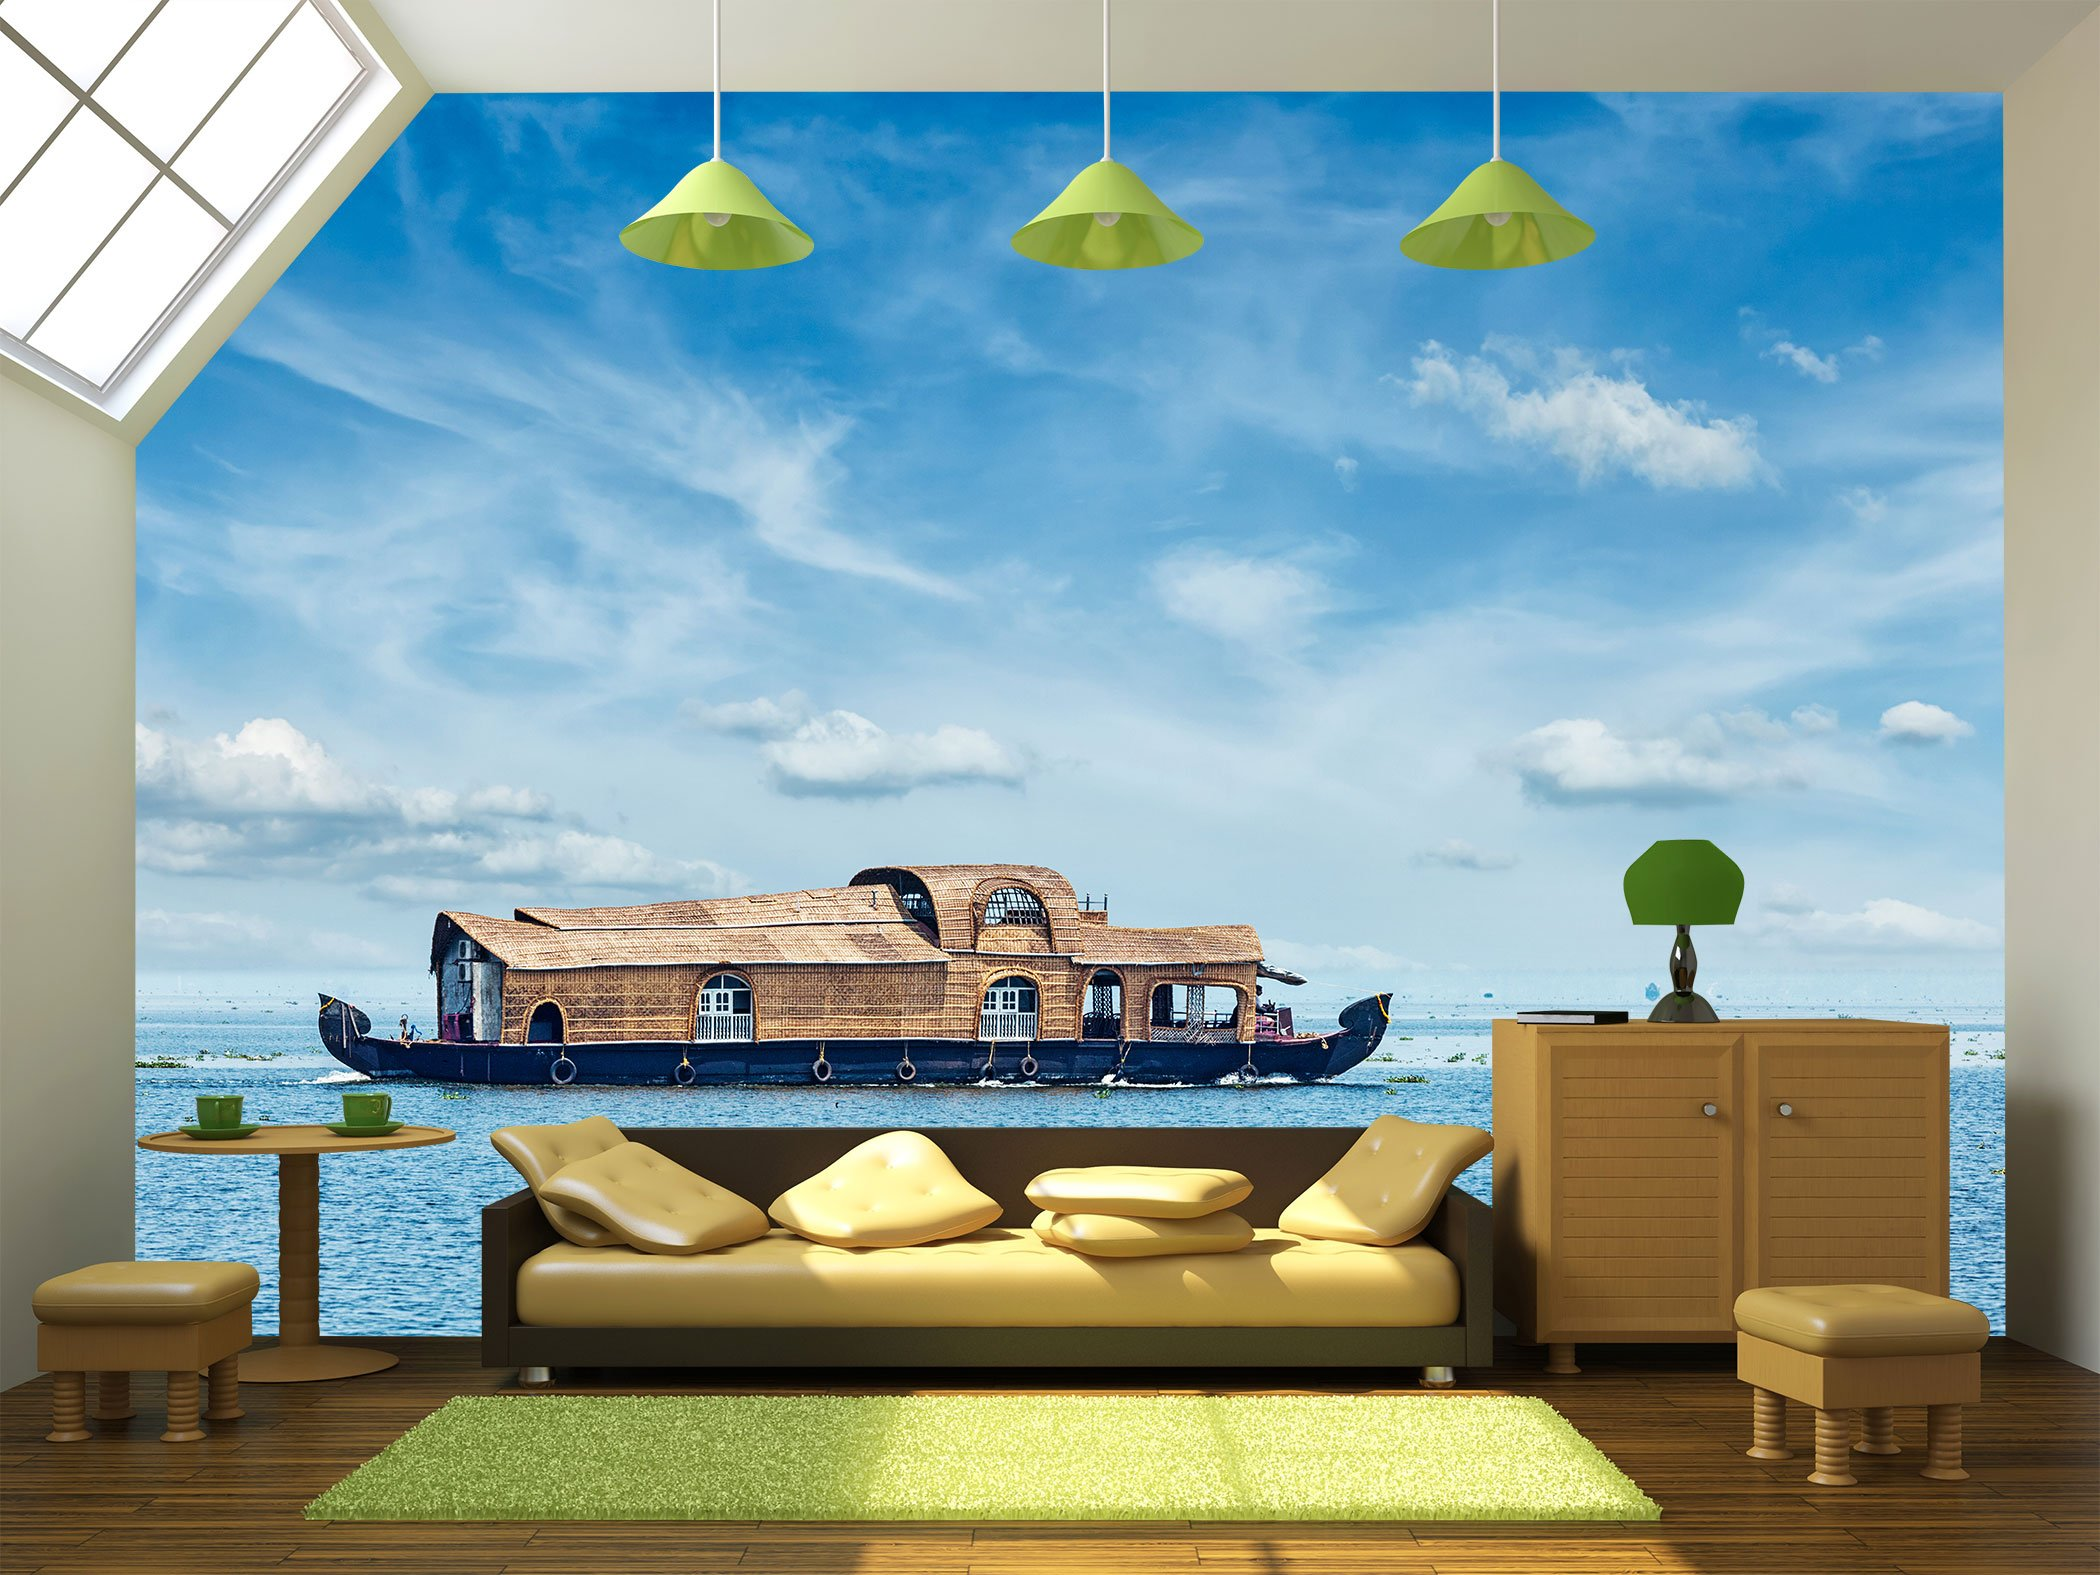 wall26 - Tourist houseboat in Vembanadu Lake, Kerala, India - Removable Wall Mural | Self-adhesive Large Wallpaper - 100x144 inches